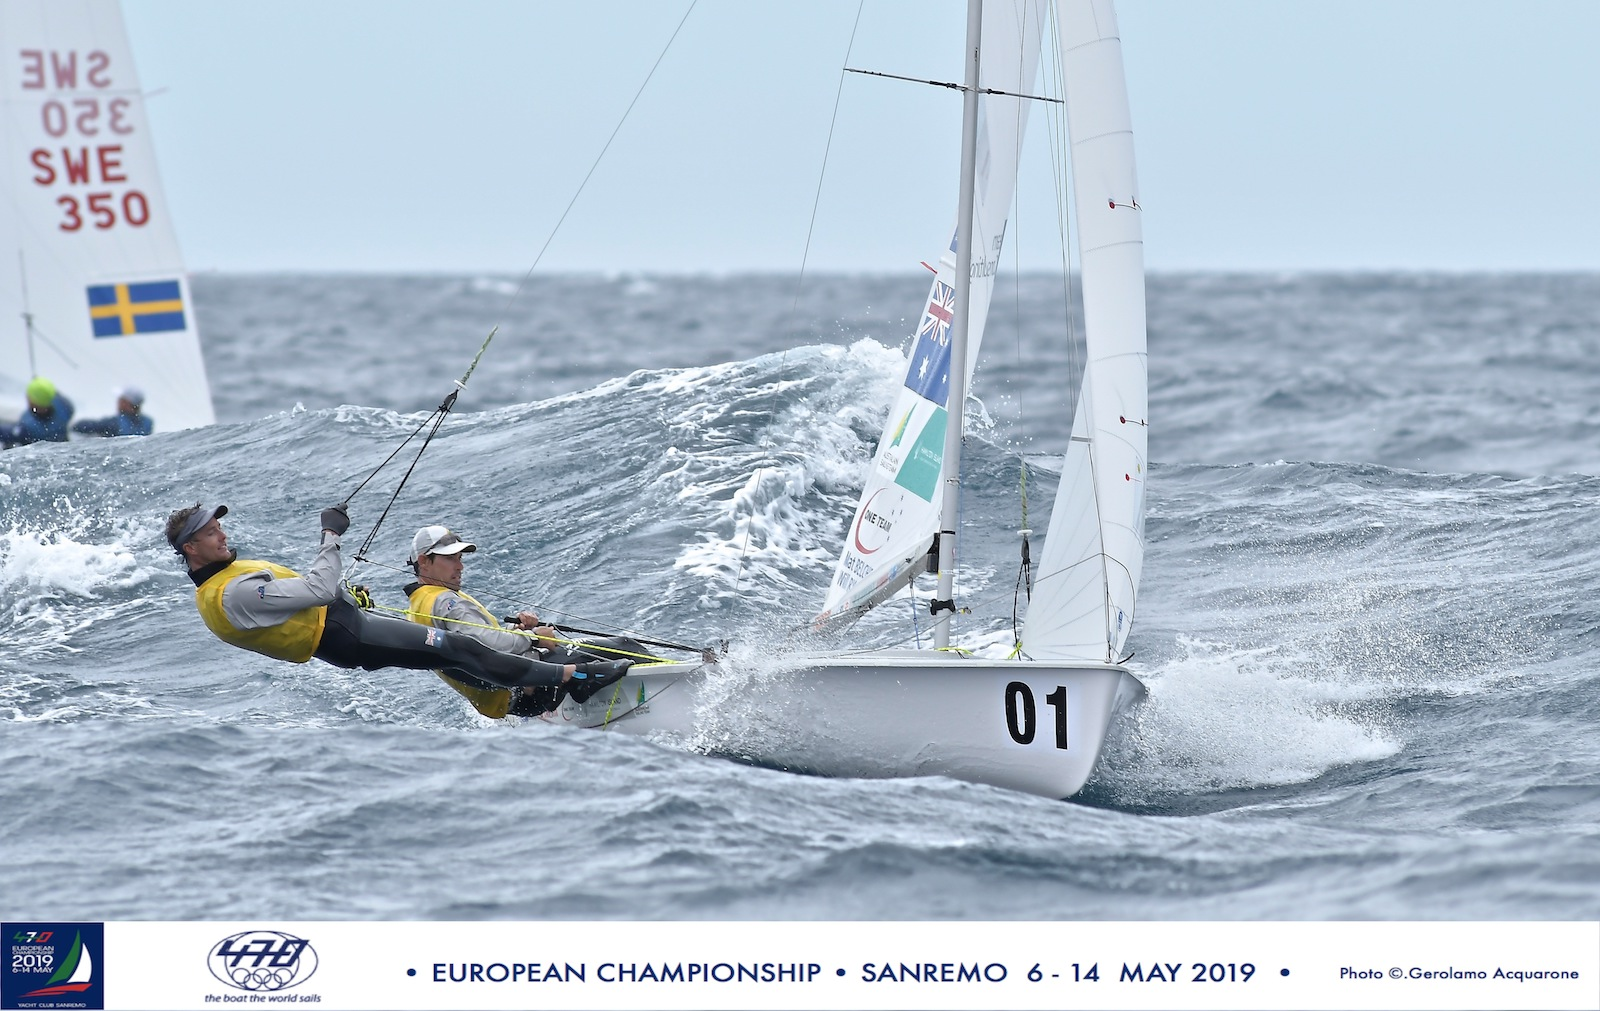 Mat Belcher and Will Ryan in testing conditions at the 2019 479 Europeans.